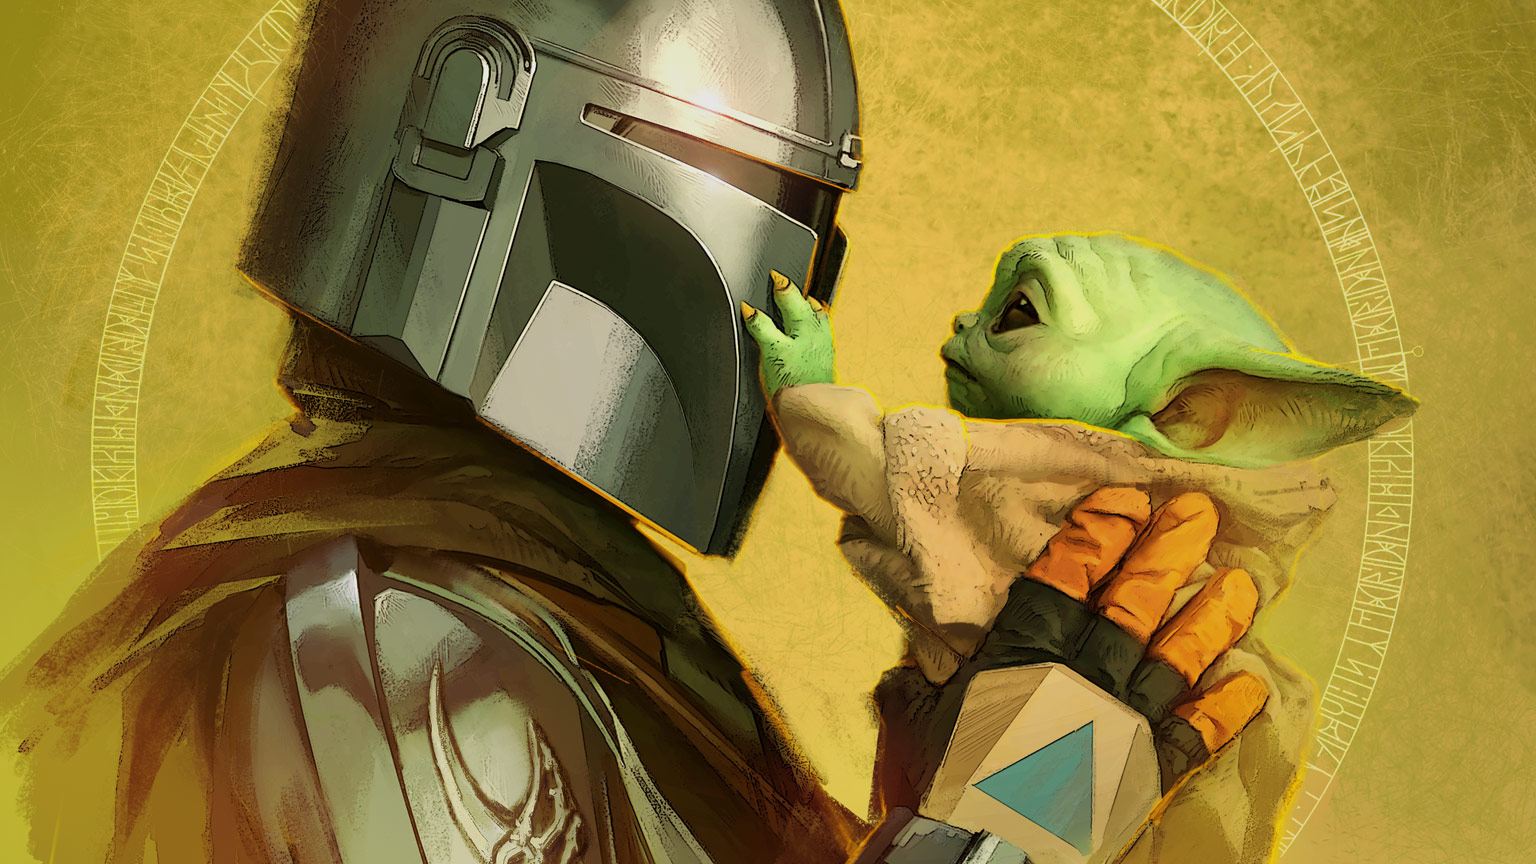 The Mandalorian and Grogu from the cover of The Art of The Mandalorian Season 2.